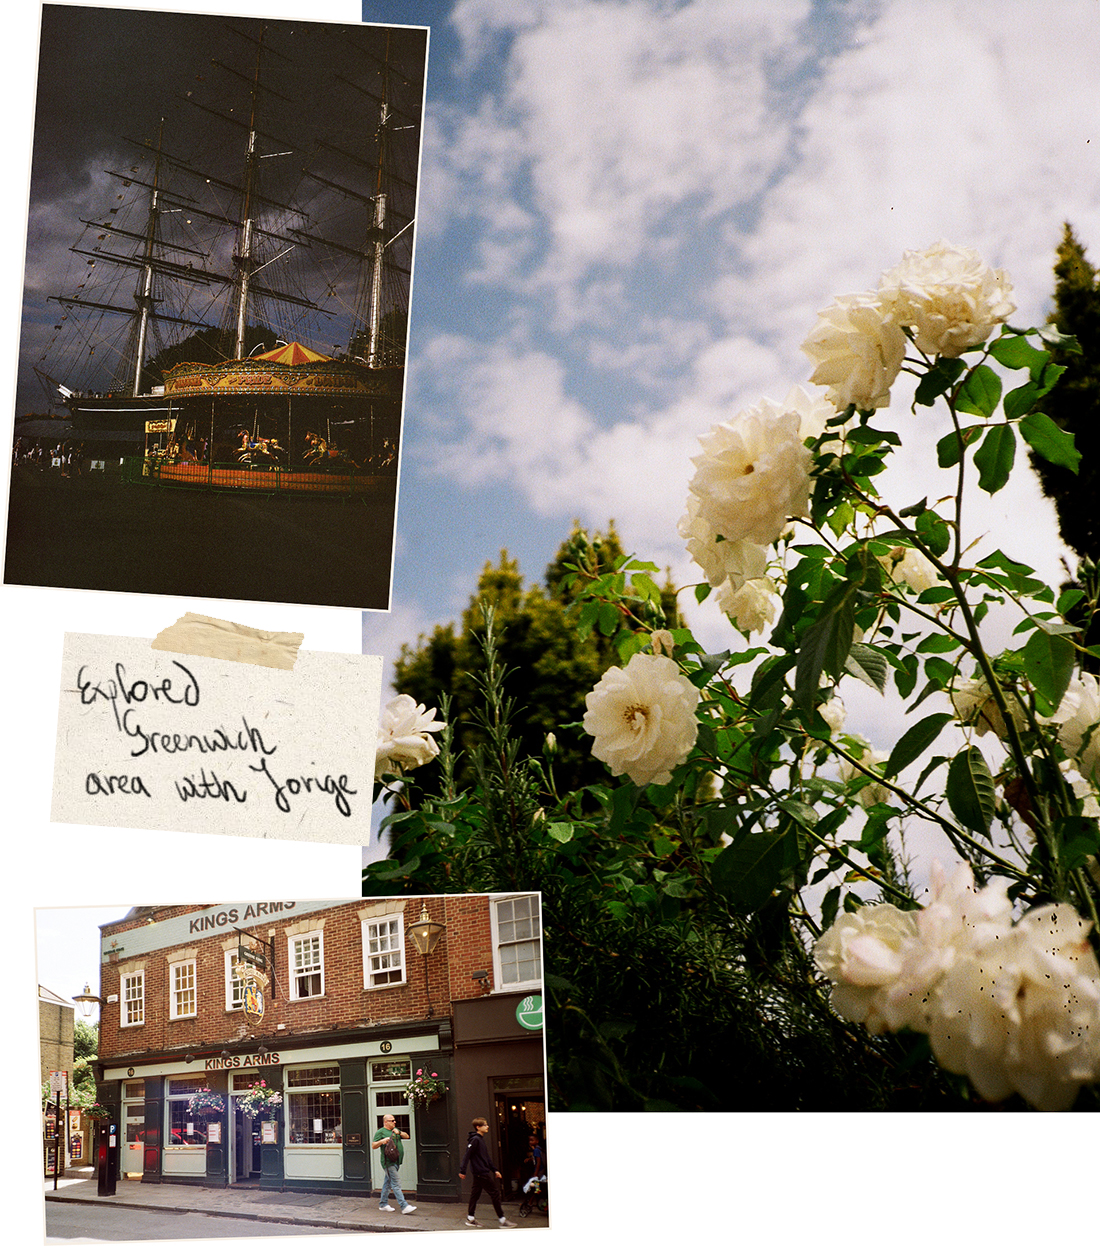 Spring / Summer 2019 35mm film diary by London based photographer Ailera Stone